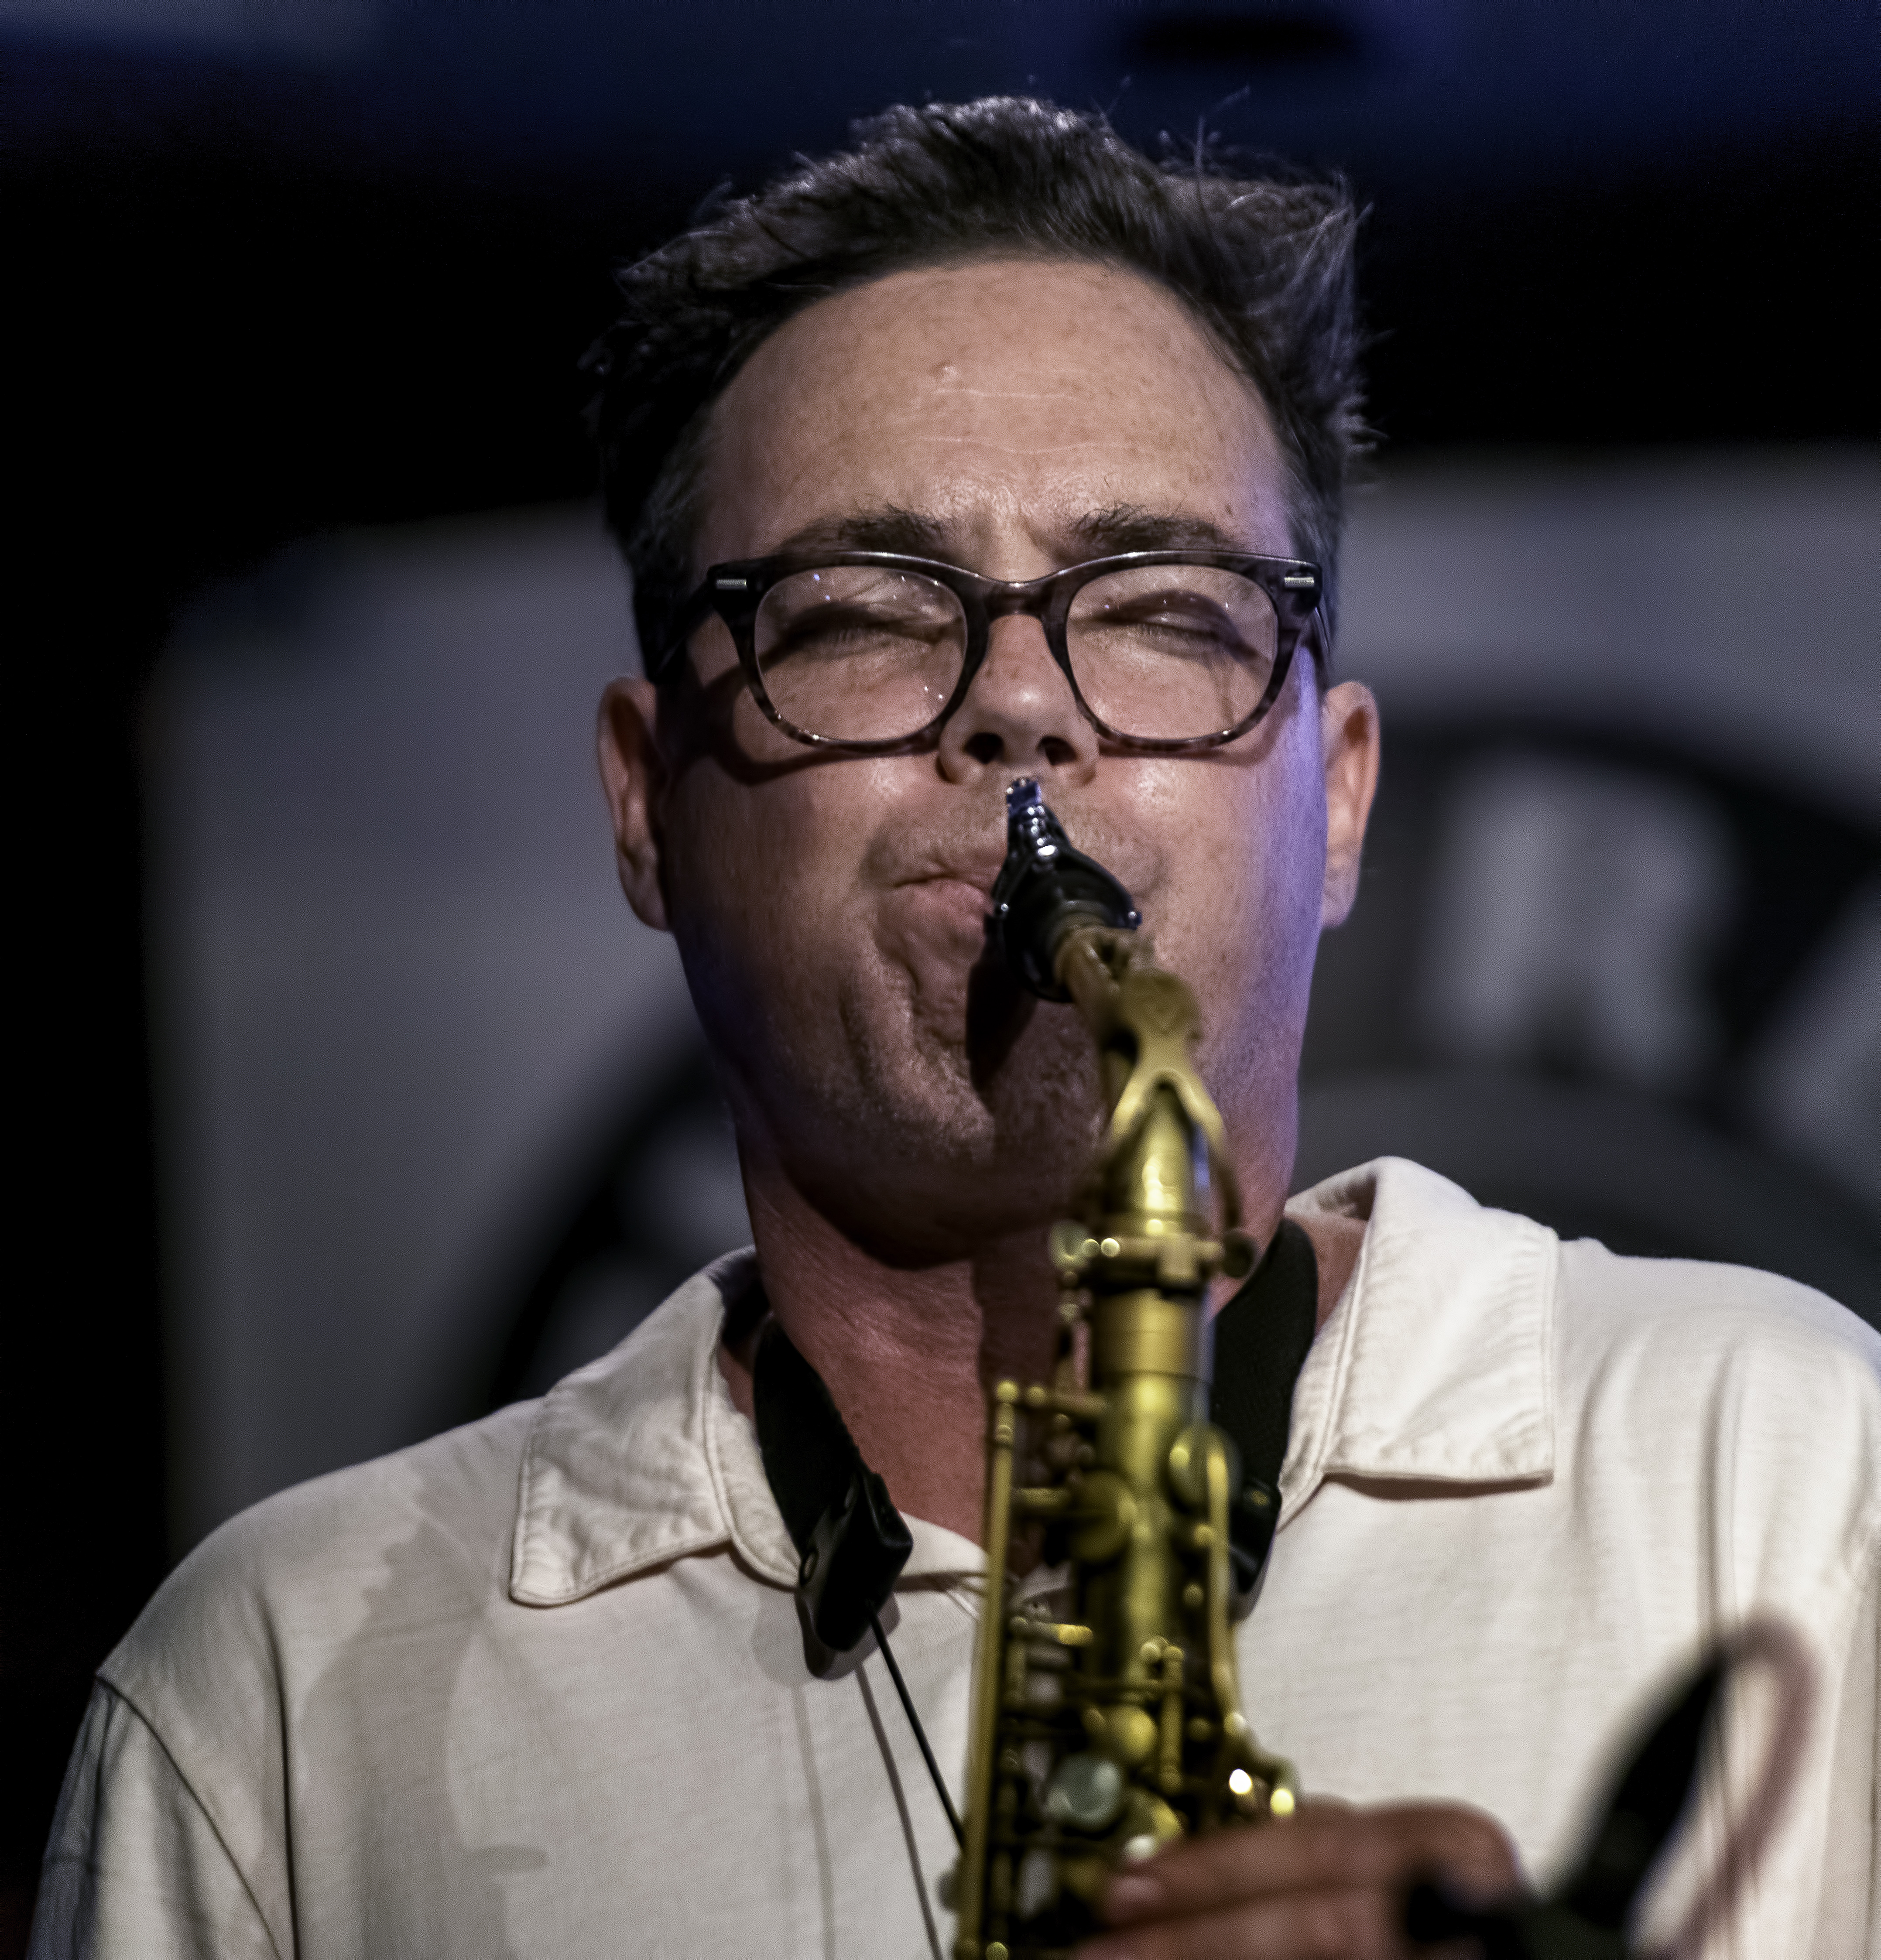 Brodie West with Quintet at the Rex Jazz Bar at the Toronto Jazz Festival 2019